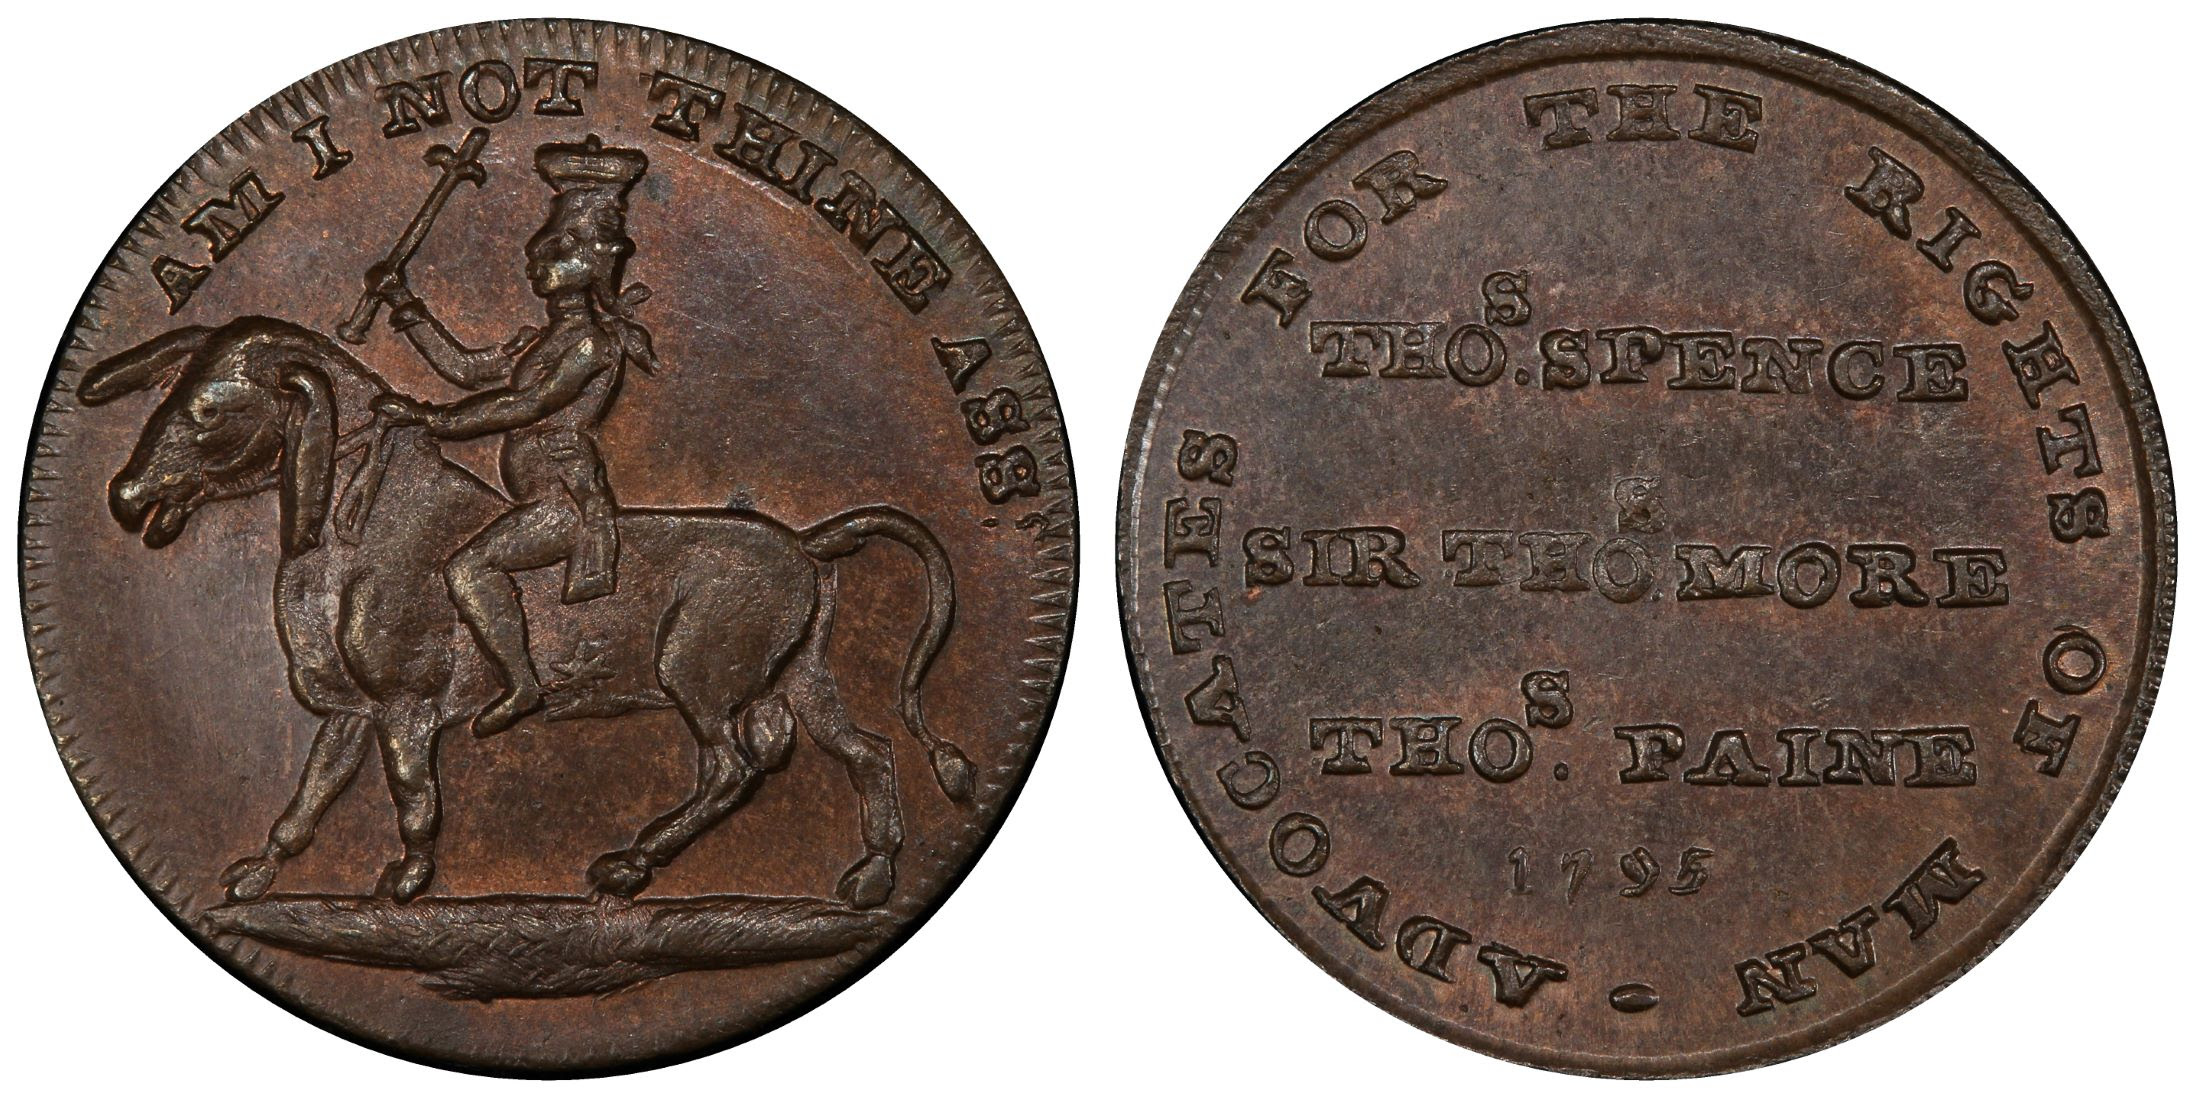 GREAT BRITAIN. Middlesex. 1795 CU Farthing Token. Images courtesy Atlas Numismatics